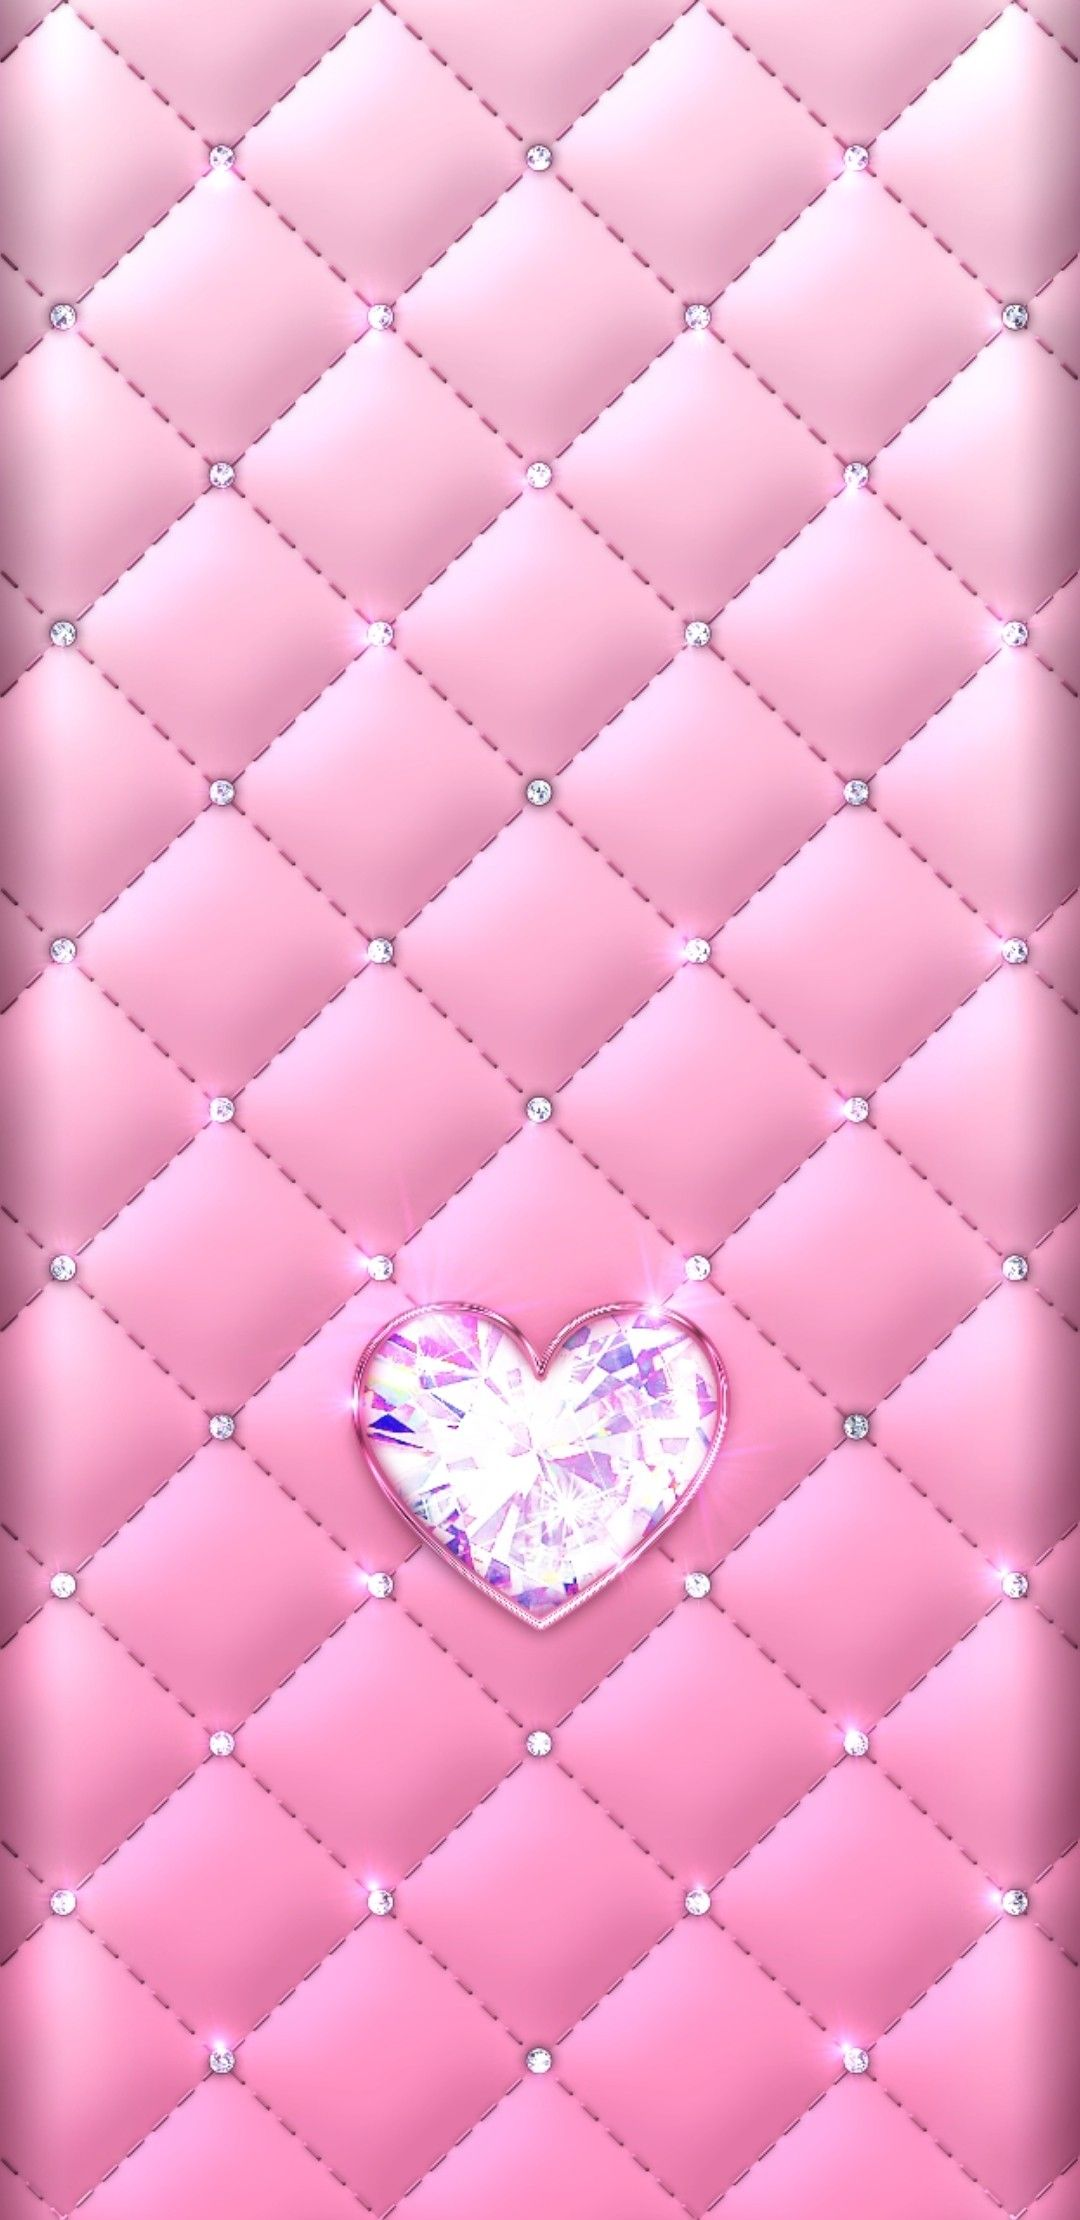 Pin On Diamonds Pearls Gems Crystals Ect Wallpaper